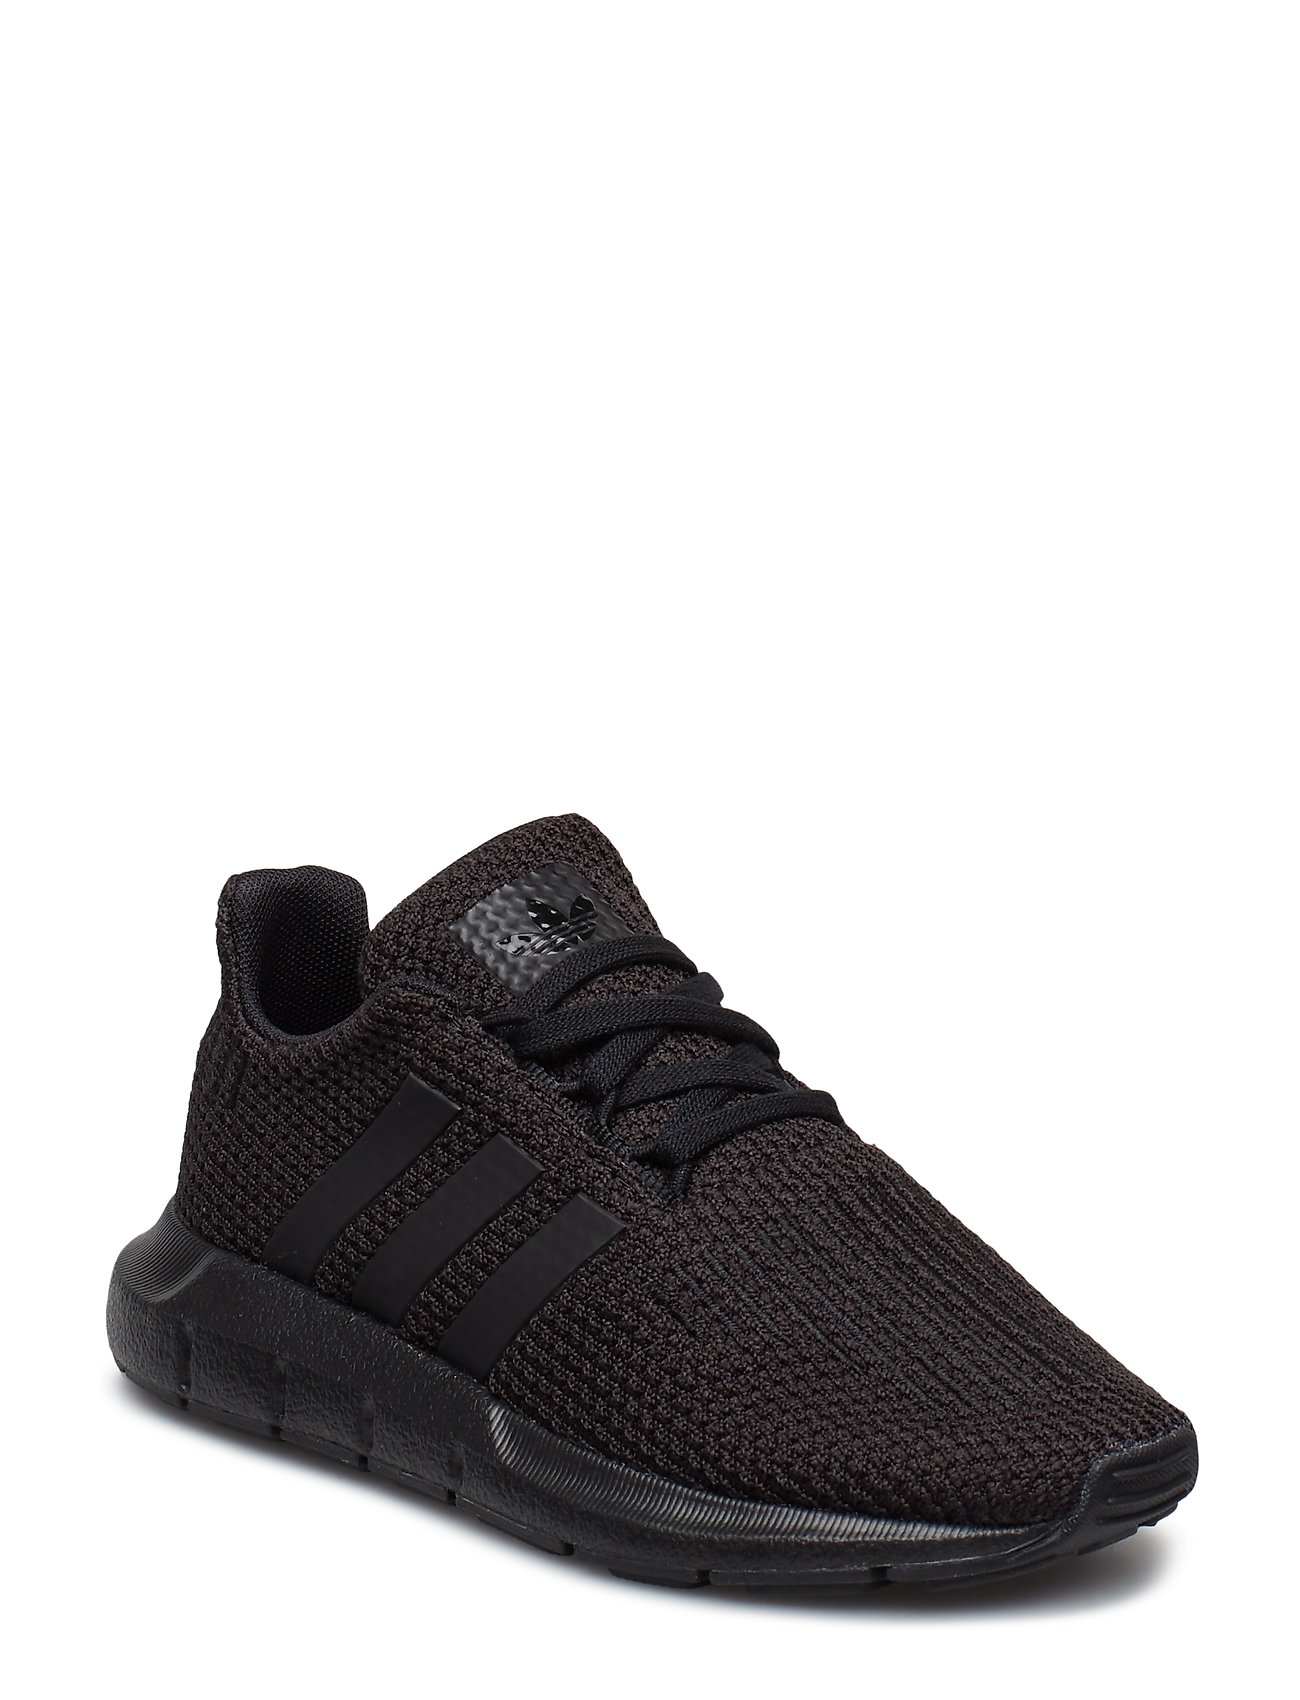 adidas Originals SWIFT RUN C - CBLACK/CBLACK/CBLACK